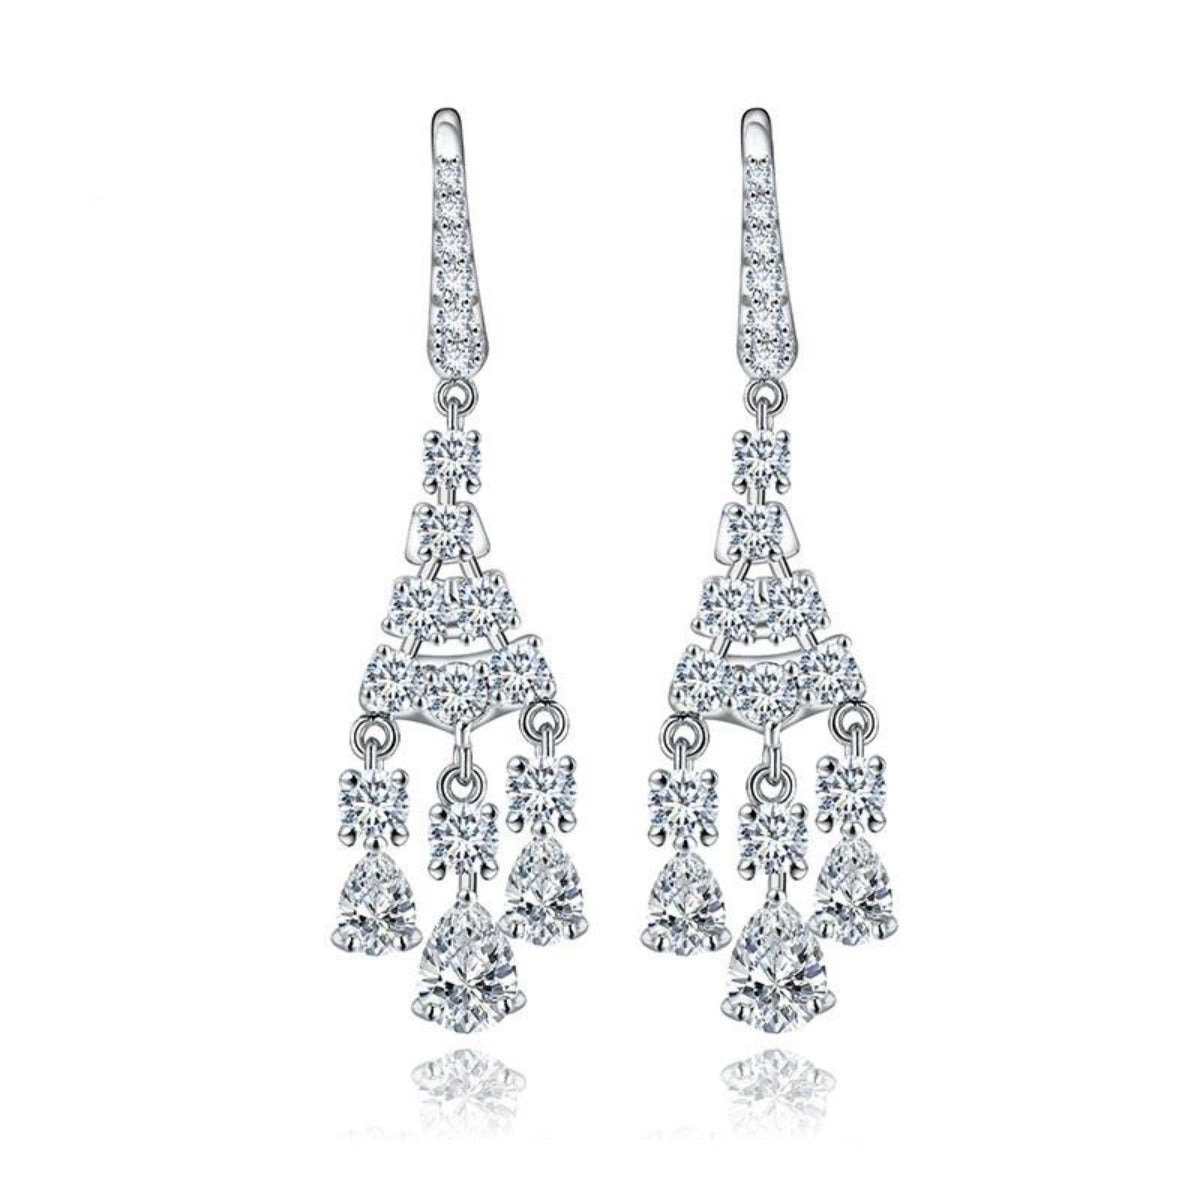 Simple Dangle Chandelier Earrings for Weddings & Events